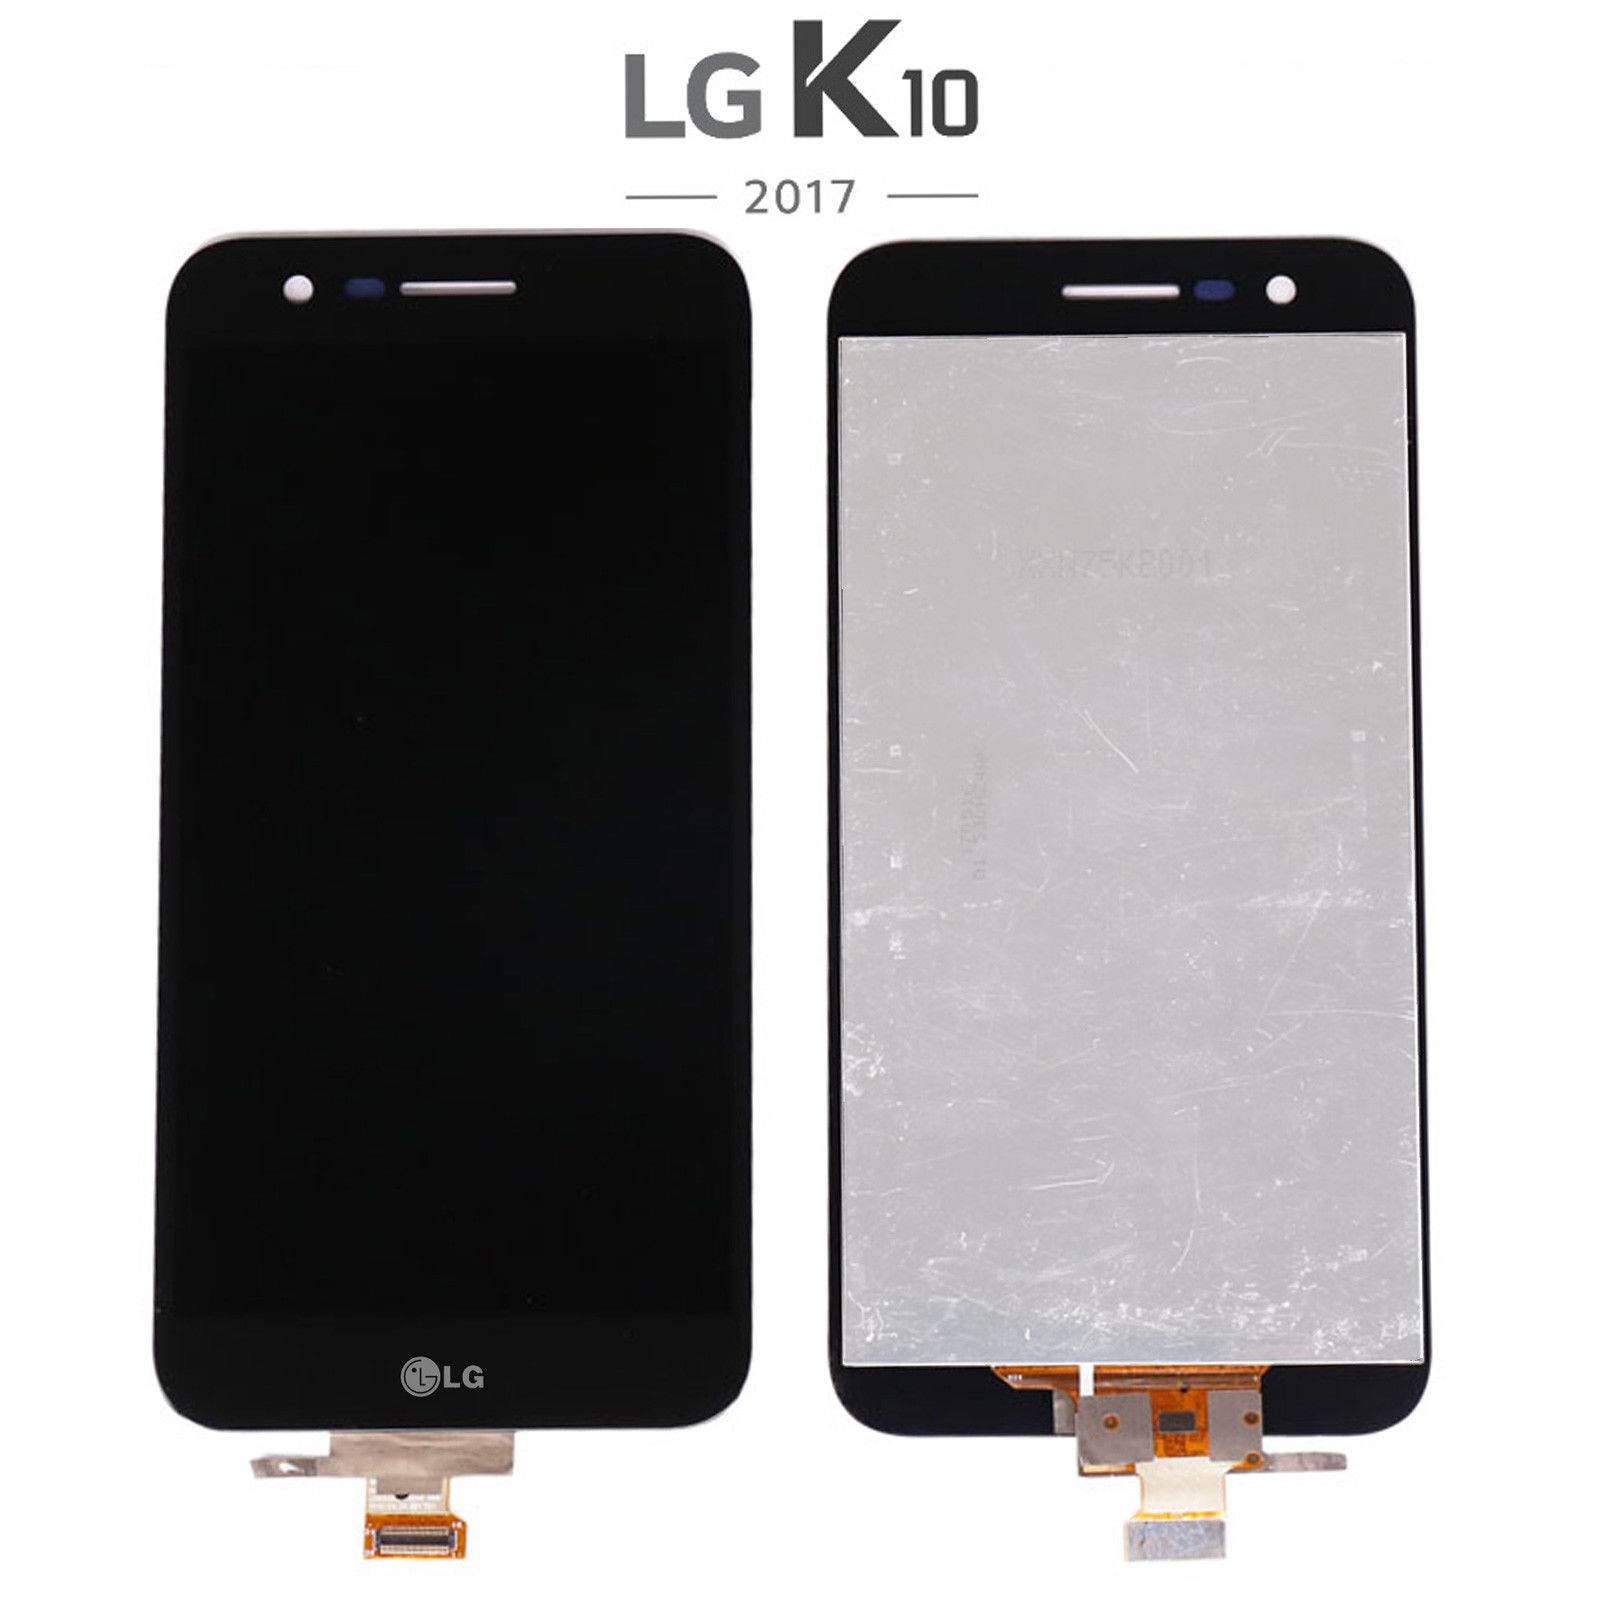 LCD DISPLAY E TOUCH SCREEN LG K10 2017 M250 M250N NERO